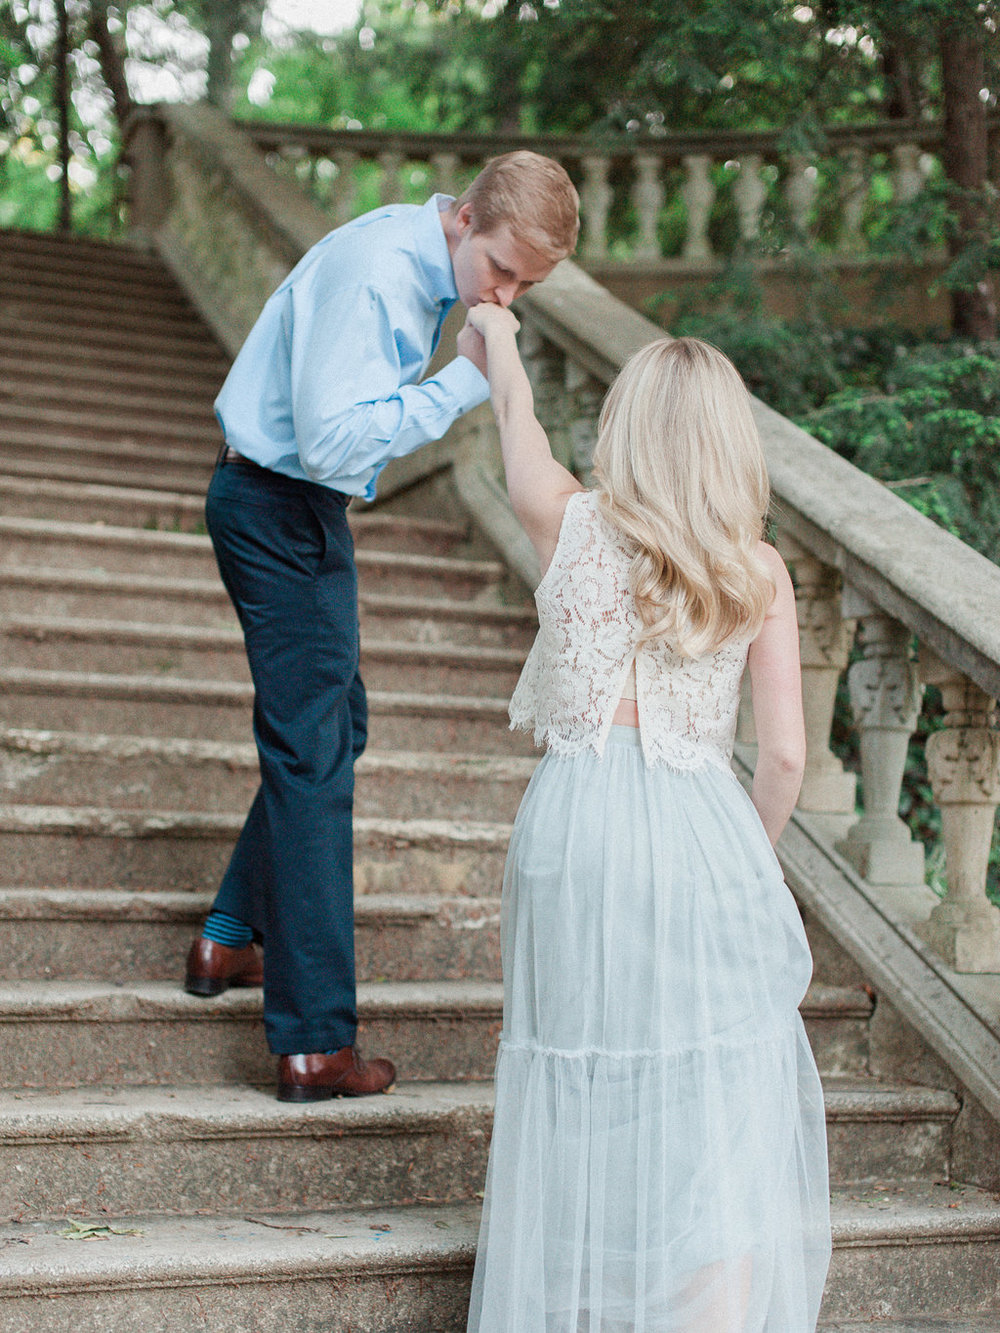 Cator-Woolford-Gardens-Engagement-atlanta-wedding-photographer-hannah-forsberg-13.jpg